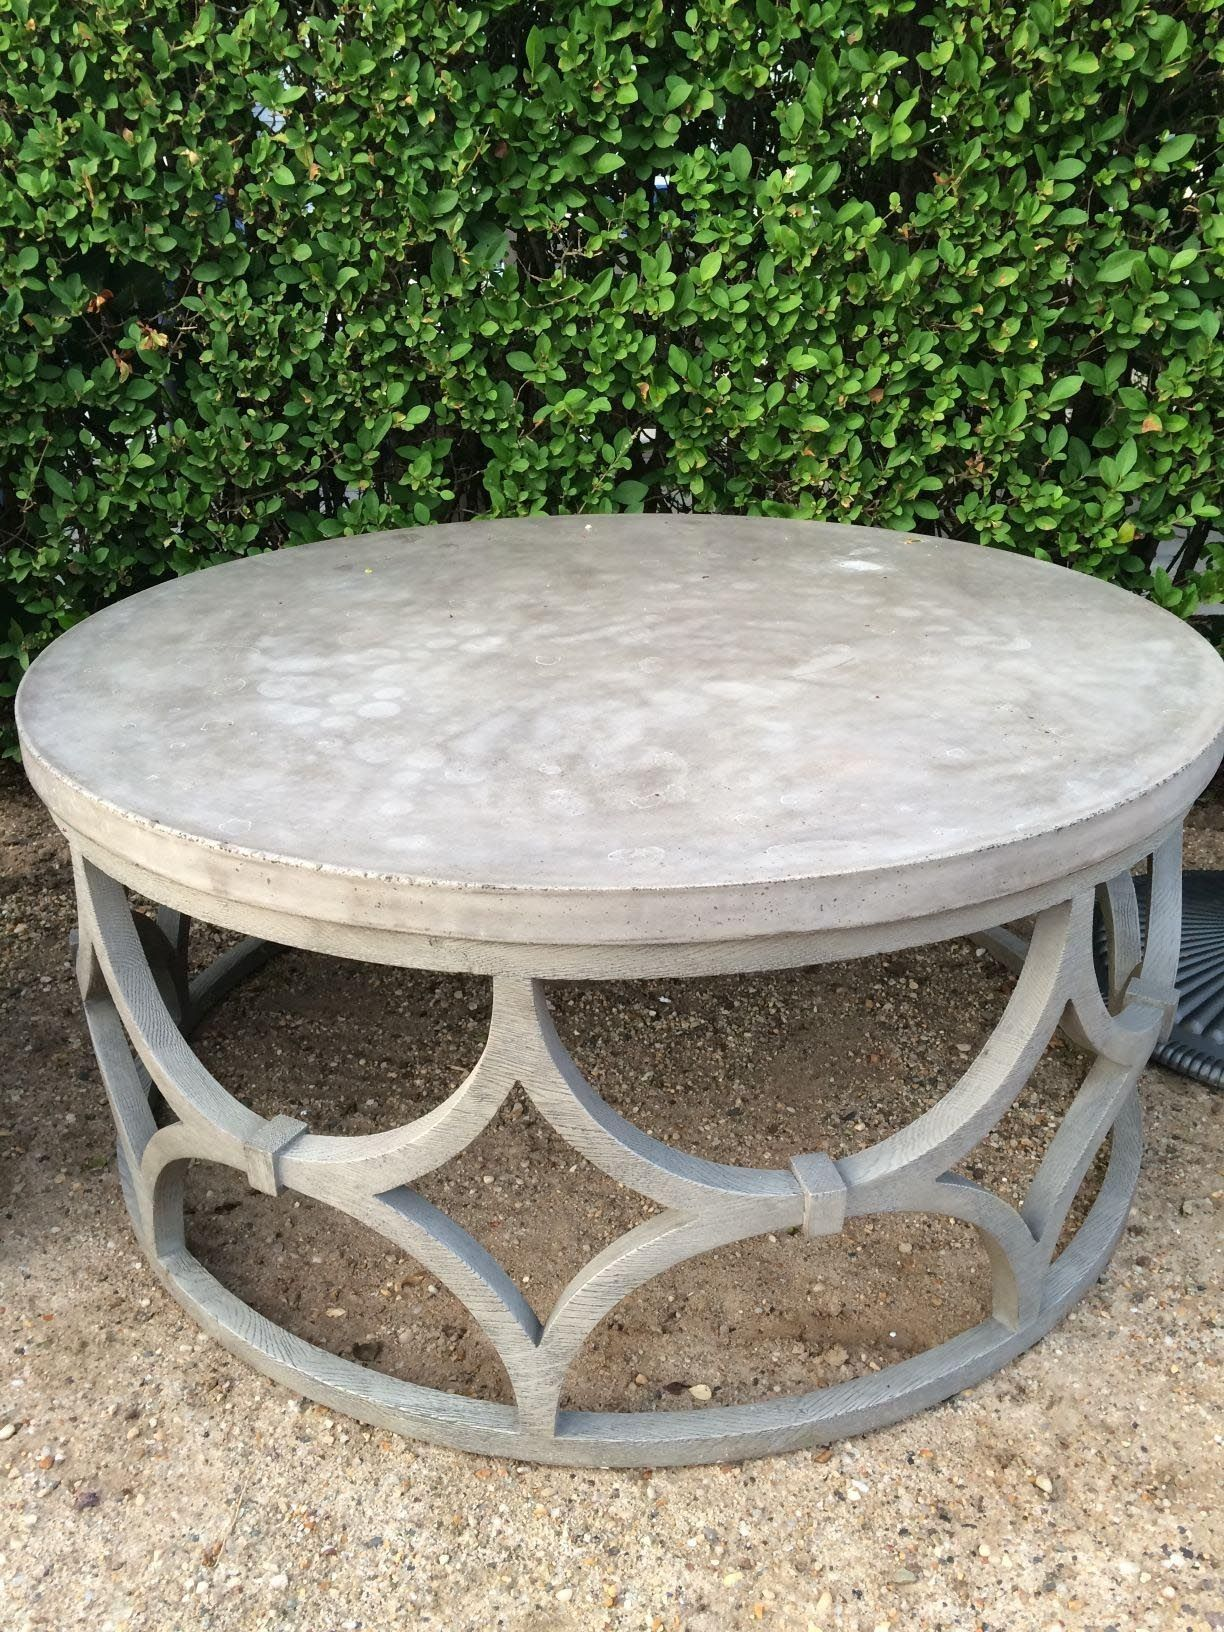 Slate Top Coffee Table Sets Collection Slate Coffee Table Set Luxury Round Outdoor Coffee Tab Circle Coffee Tables Round Coffee Table Outdoor Coffee Tables [ 1632 x 1224 Pixel ]